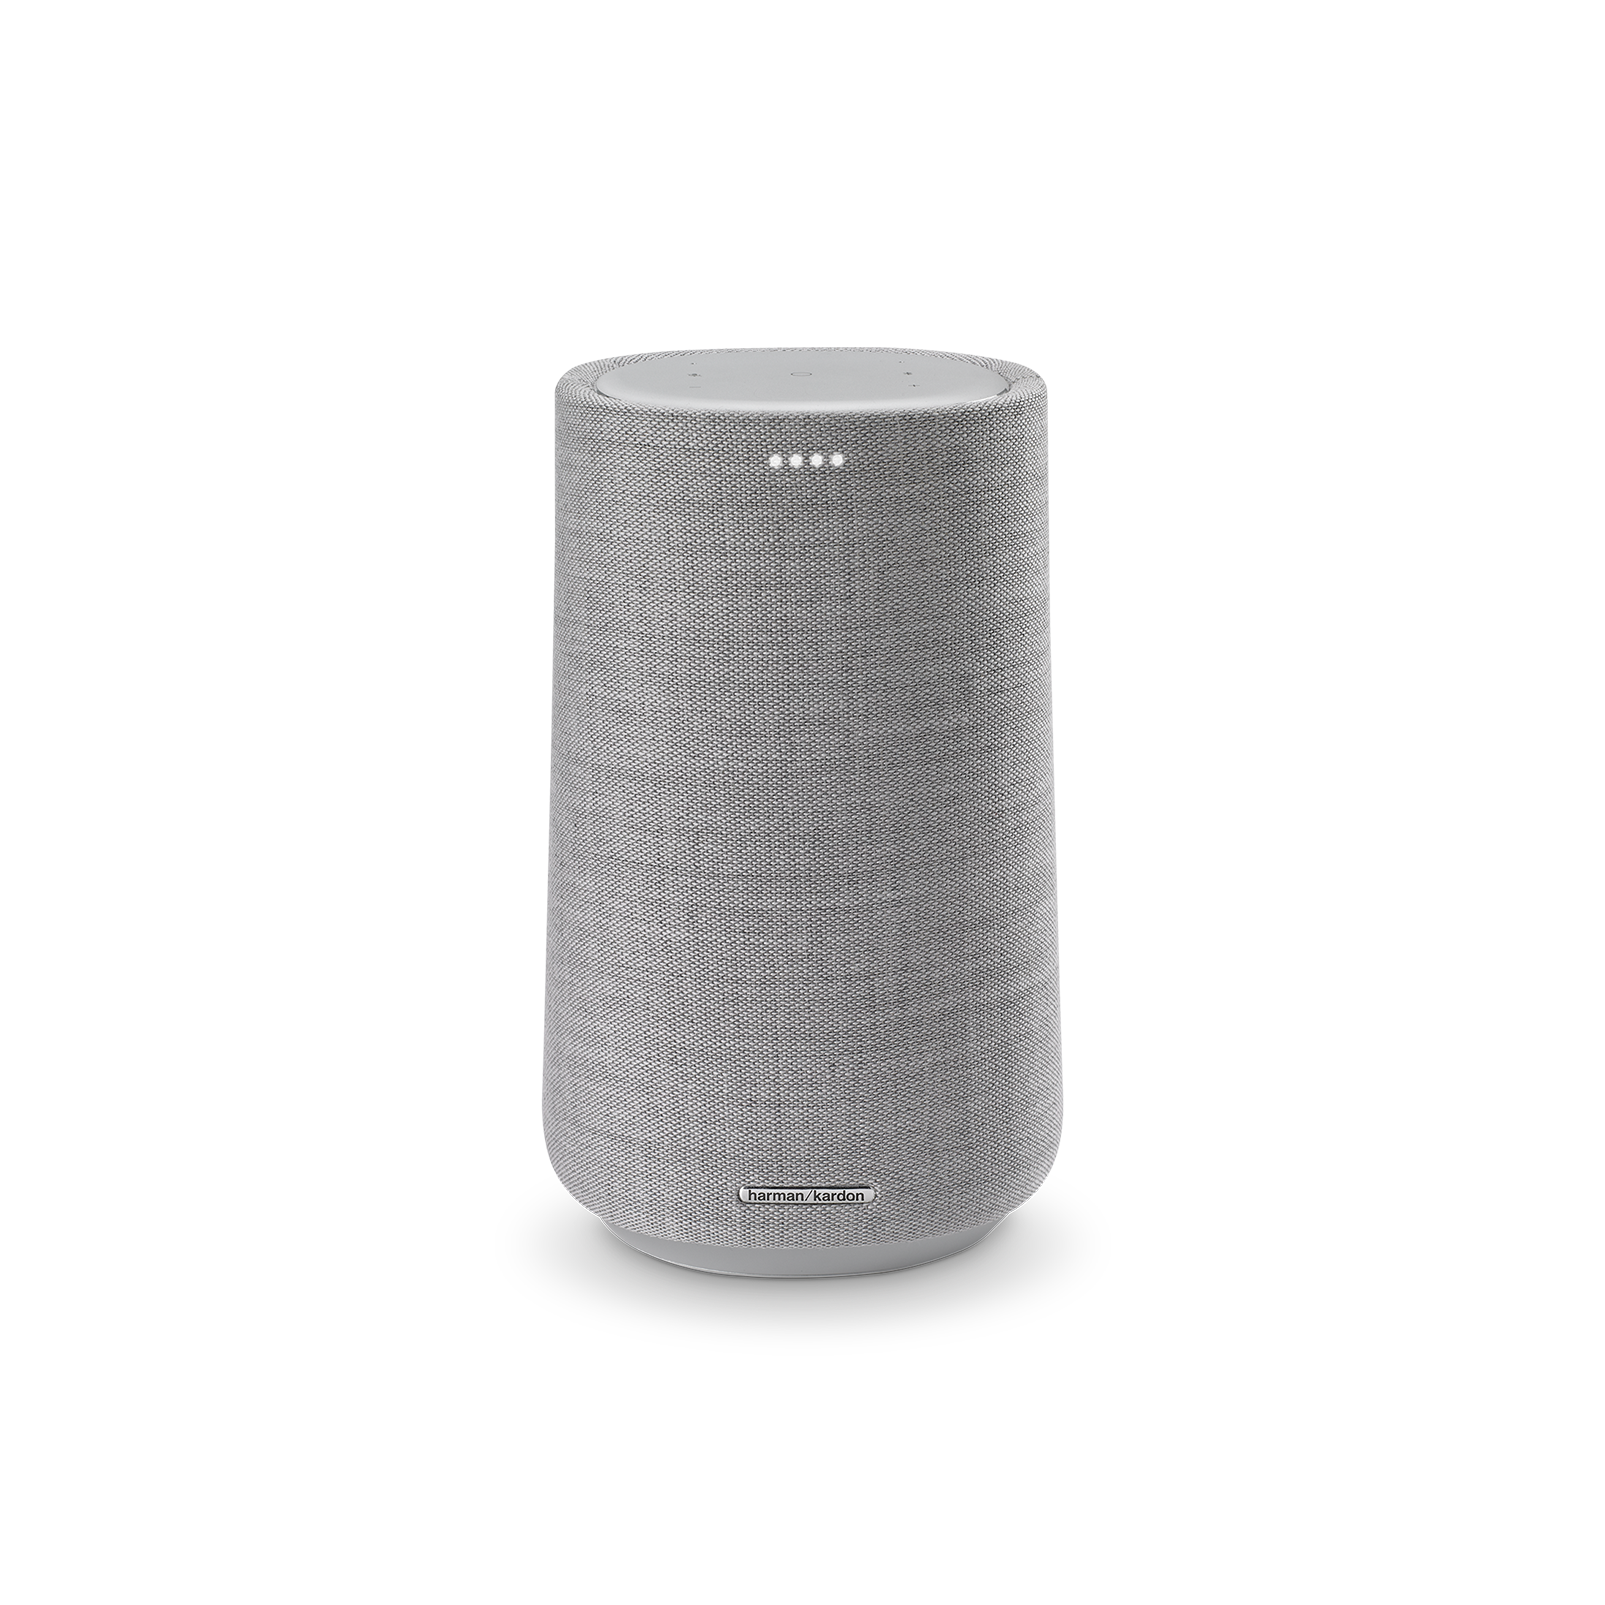 Harman Kardon Citation 100 MKII - Grey - Bring rich wireless sound to any space with the smart and compact Harman Kardon Citation 100 mkII. Its innovative features include AirPlay, Chromecast built-in and the Google Assistant. - Front